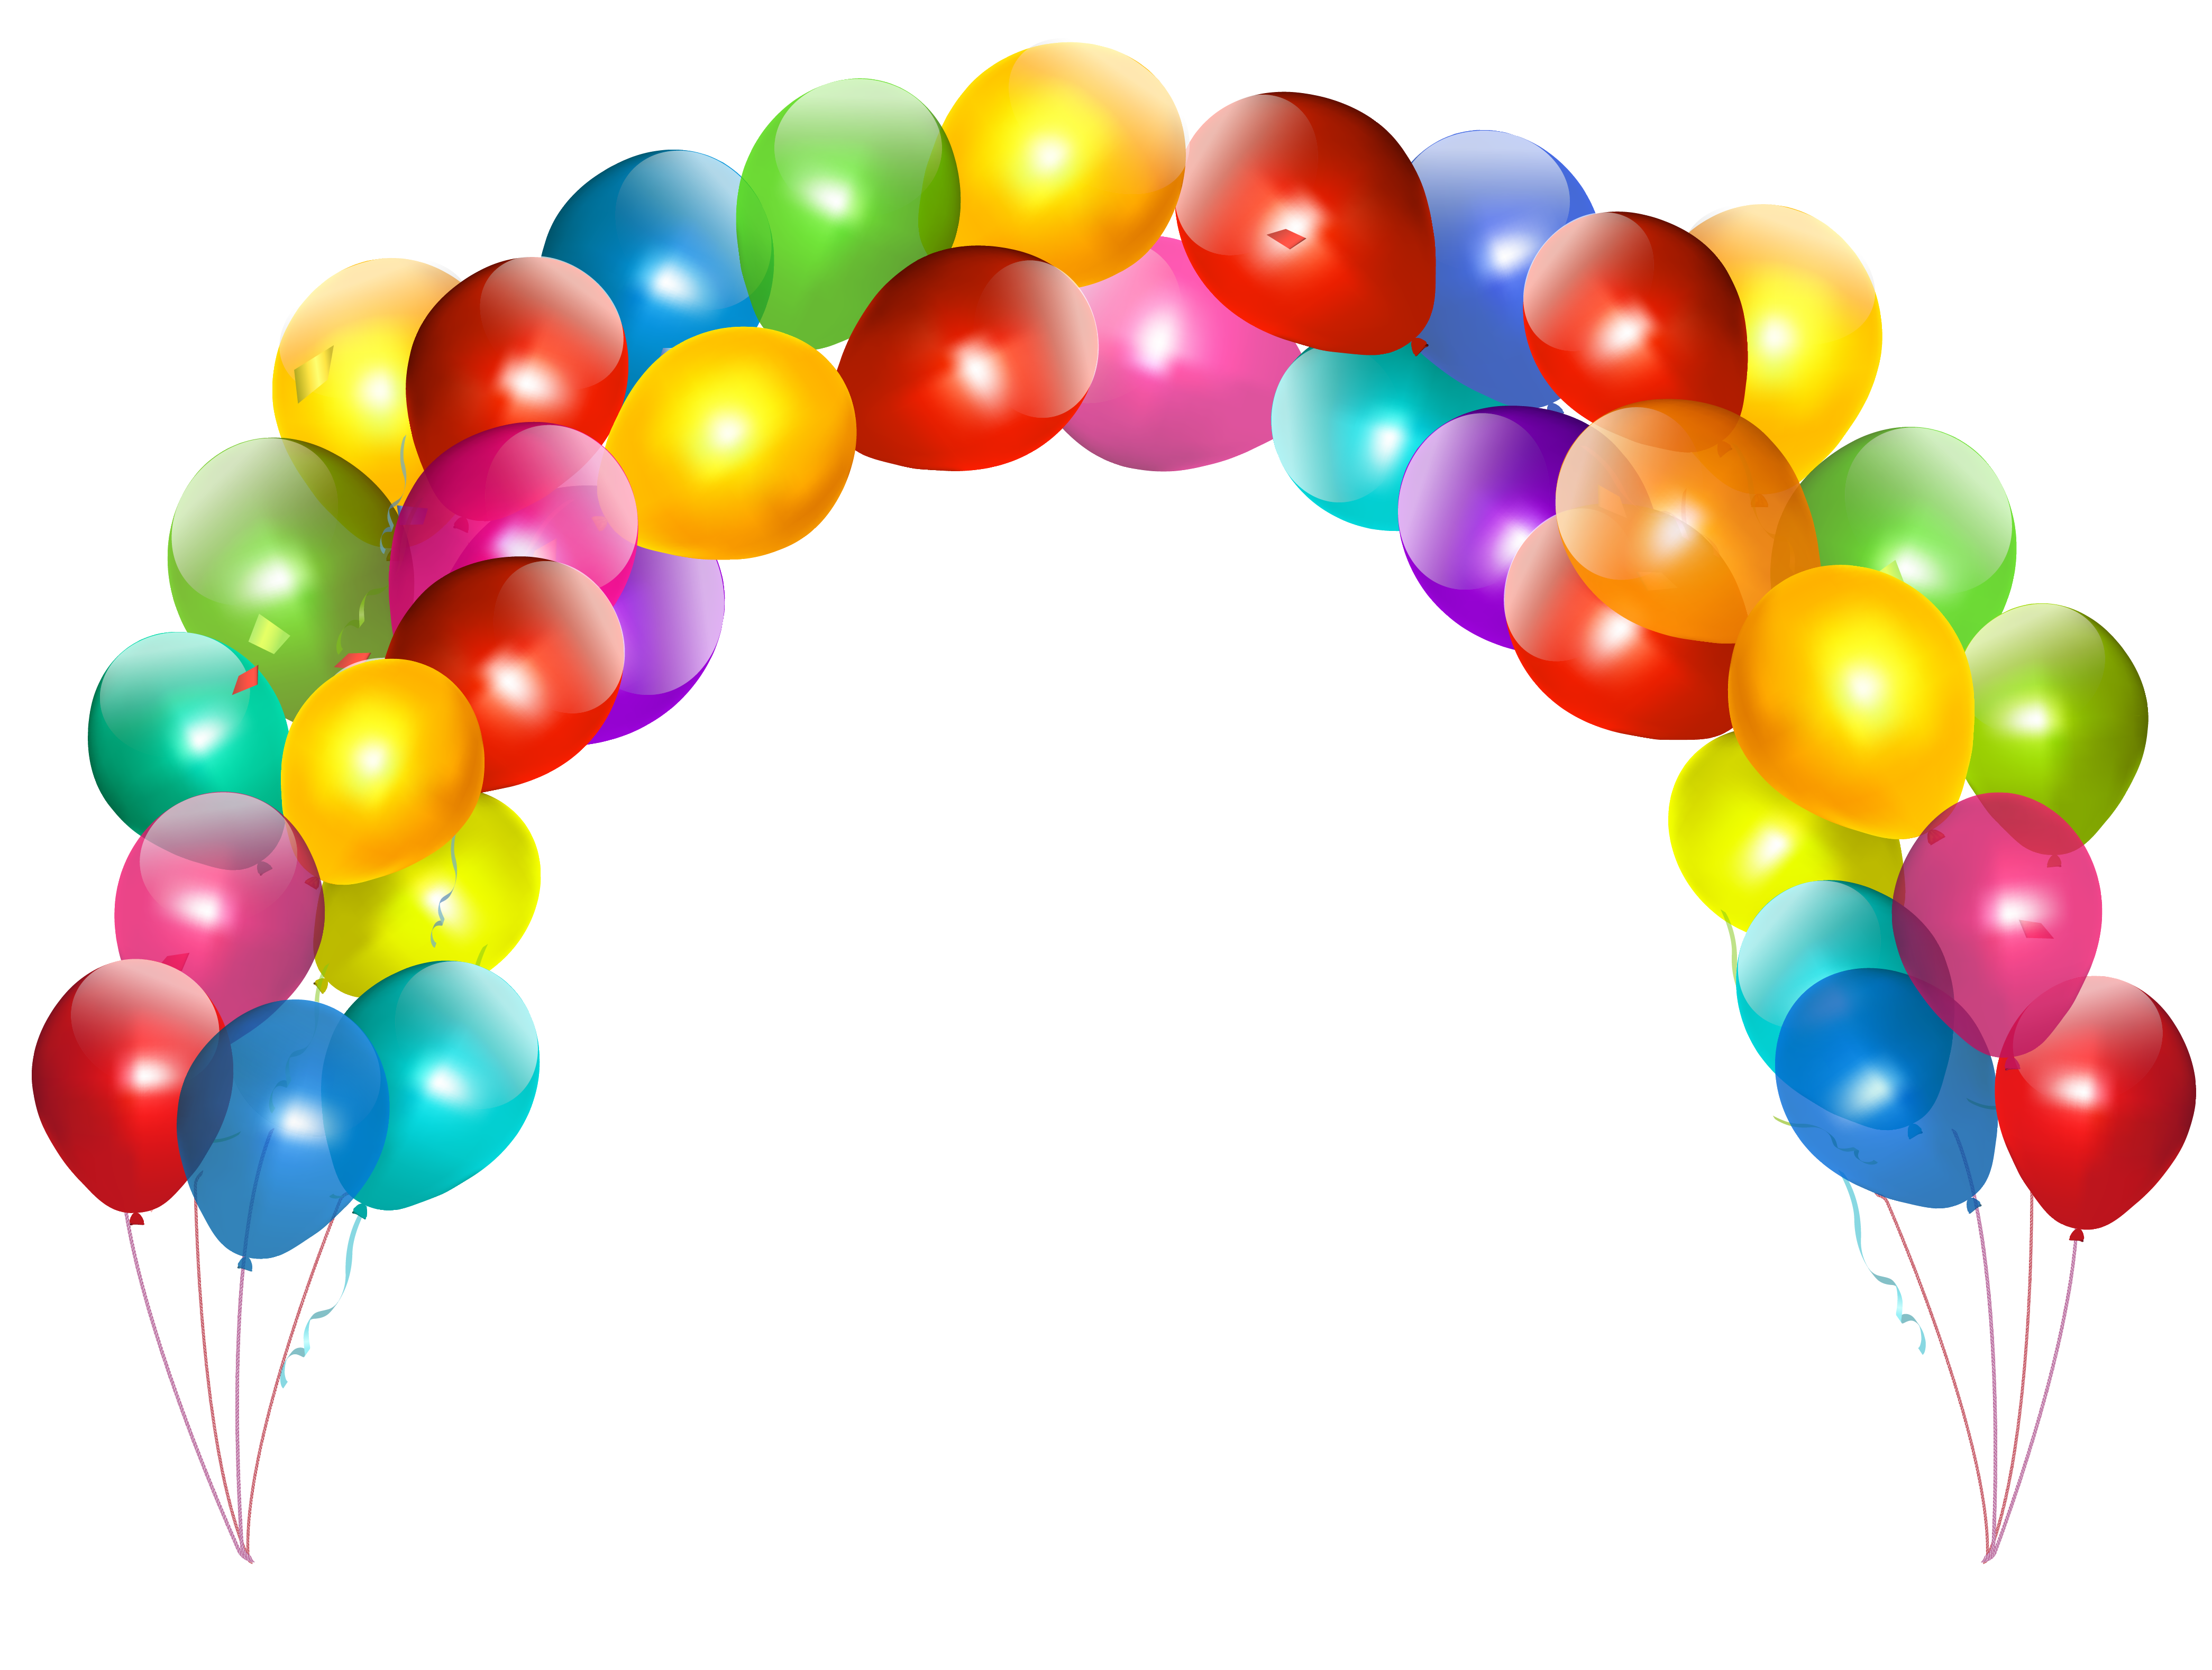 Clipart All Types Of Balloons Pinterest More Balloon Arch Ideas